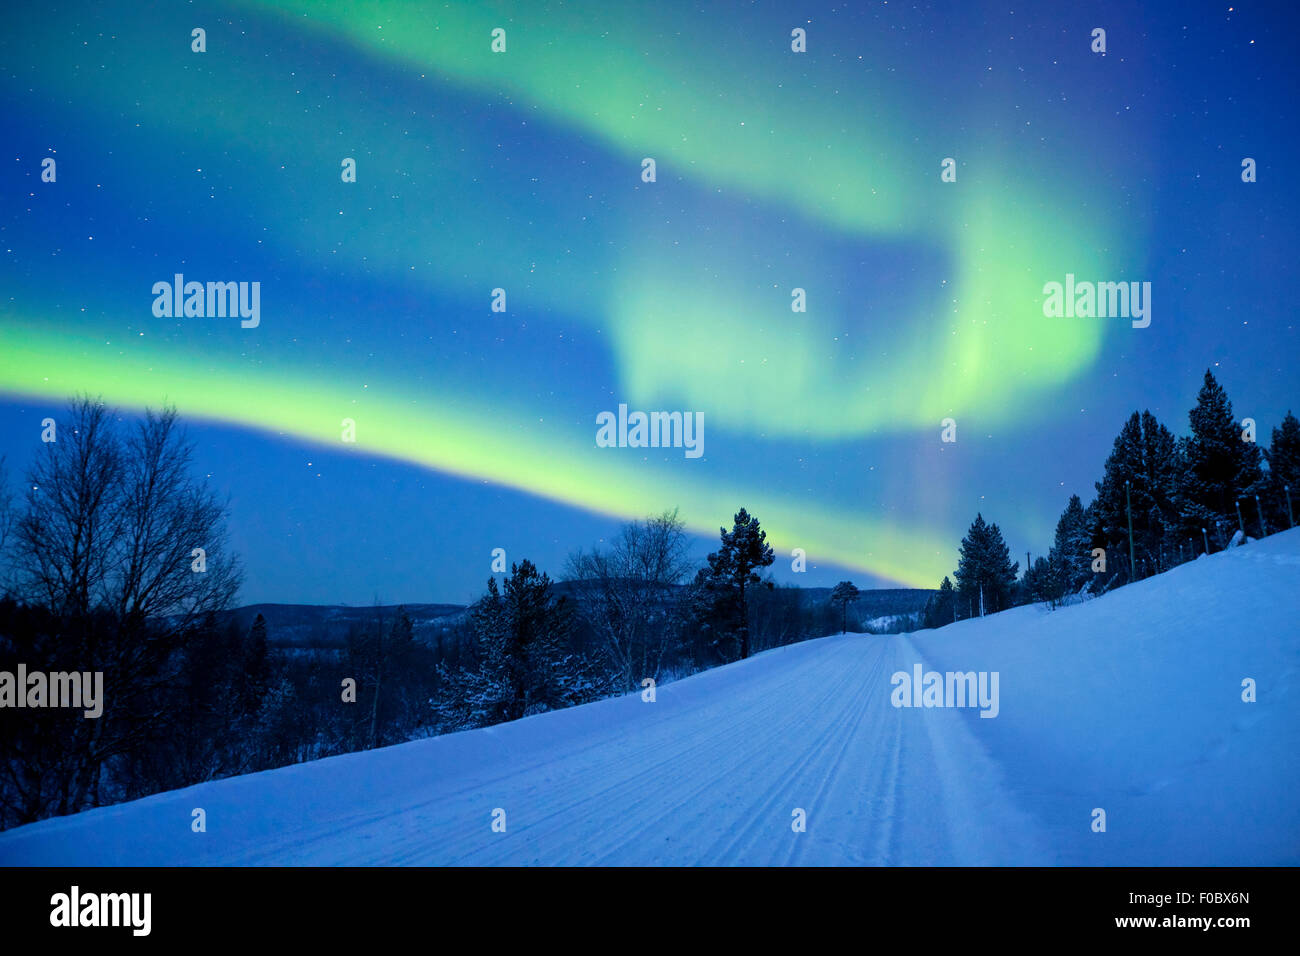 Spectacular aurora borealis (northern lights) over a road through winter landscape in Finnish Lapland. - Stock Image